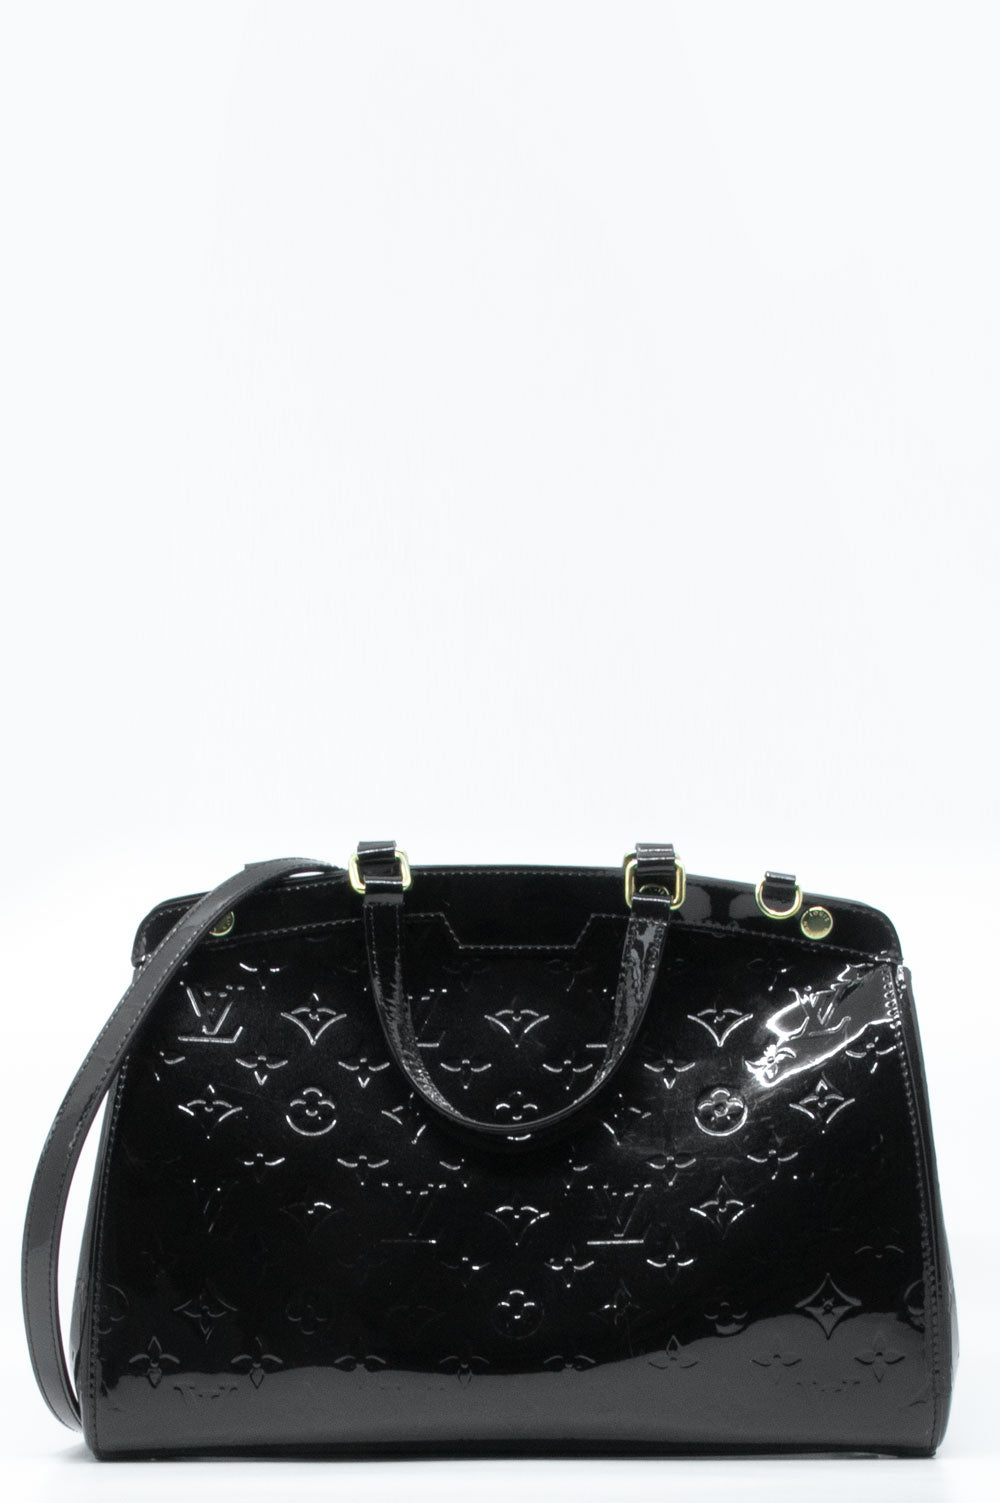 Louis Vuitton Brea in schwarz.